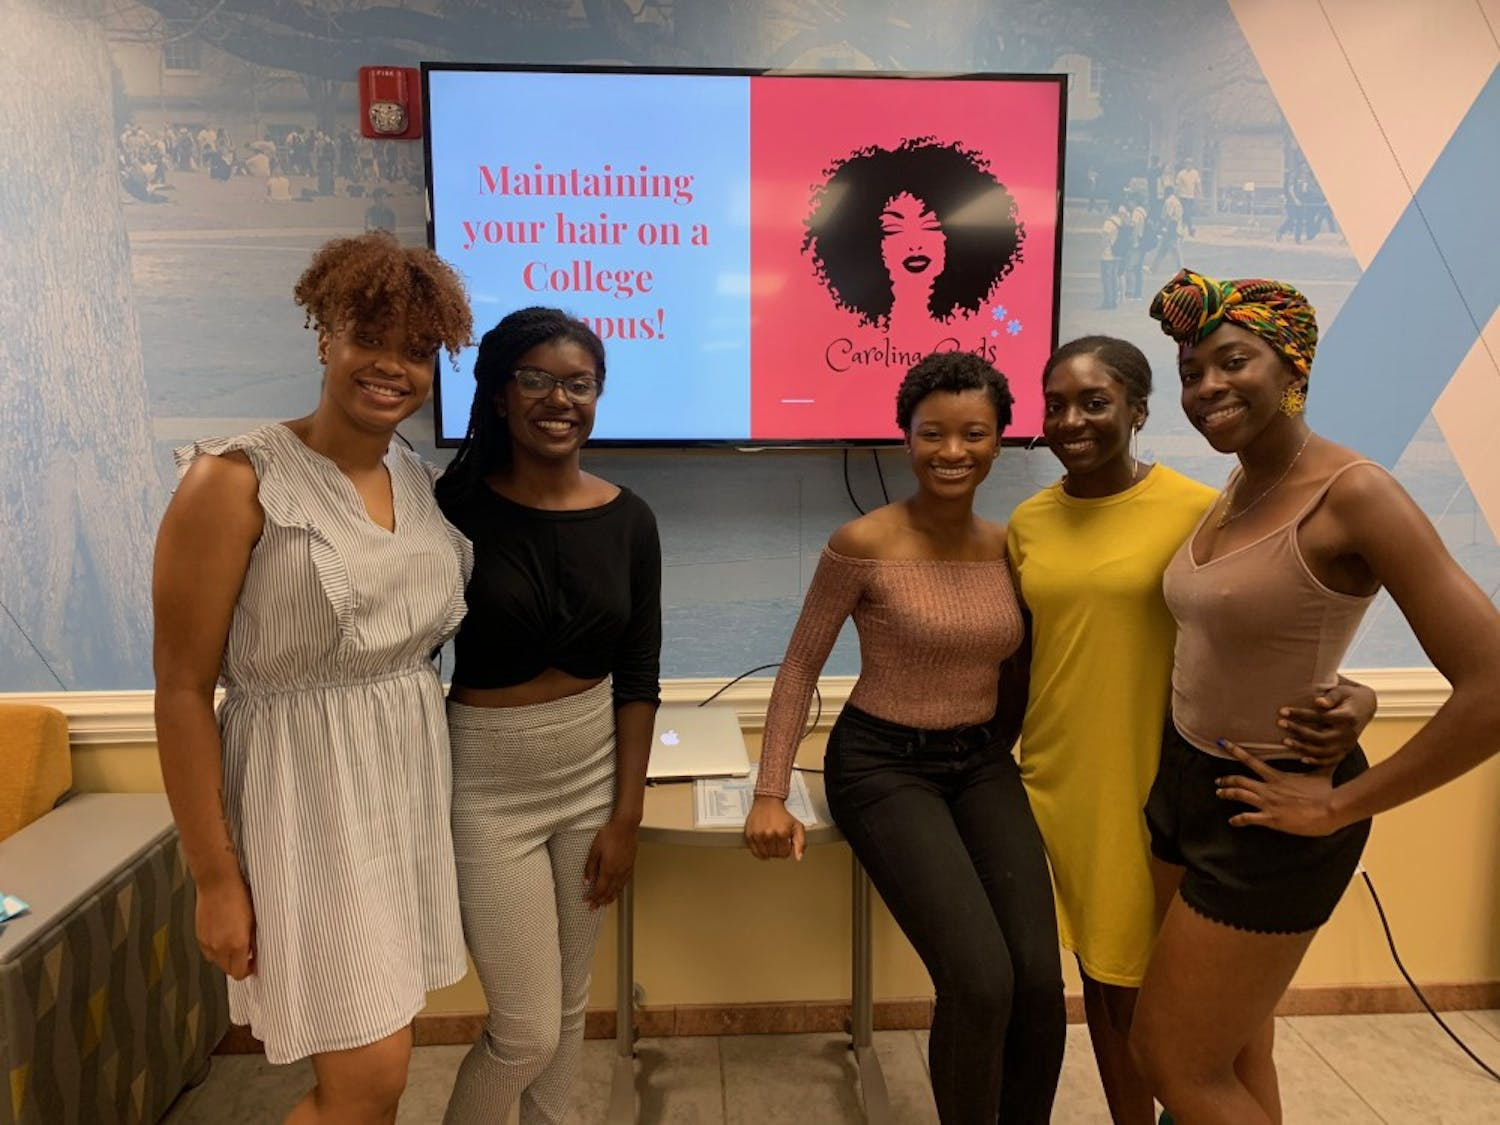 """Members of Carolina Curls gathered on Oct. 7 for their second annual brunch, which had the theme """"Maintaining your Hair on a College Campus."""" Photo courtesy of Kennedy Parkins and taken by Darryl Shaw."""